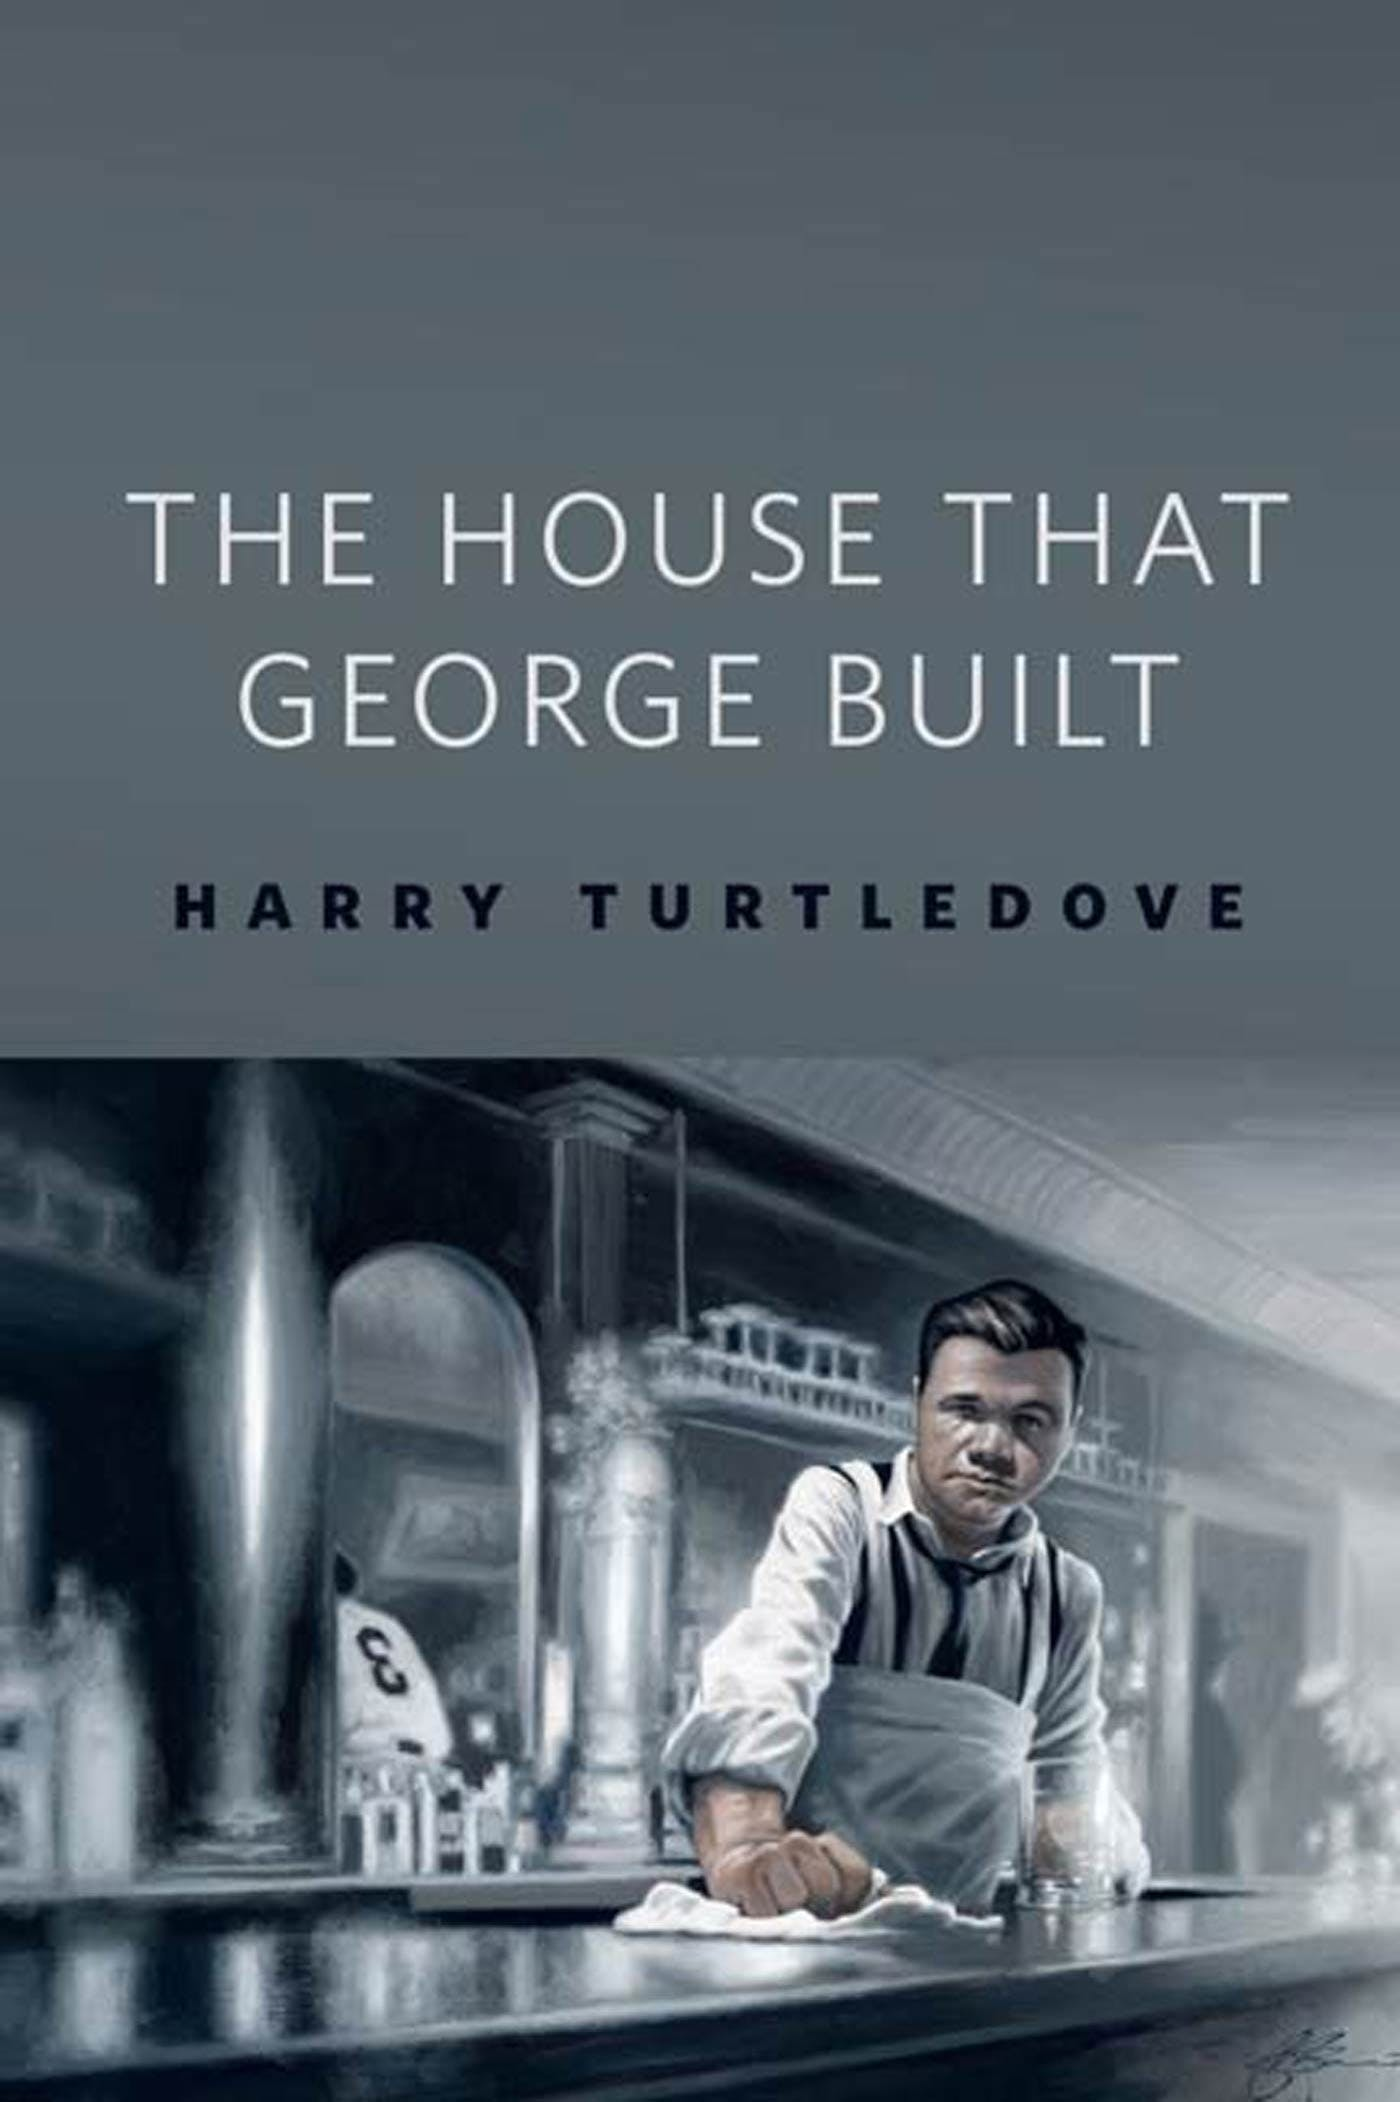 Image of The House That George Built